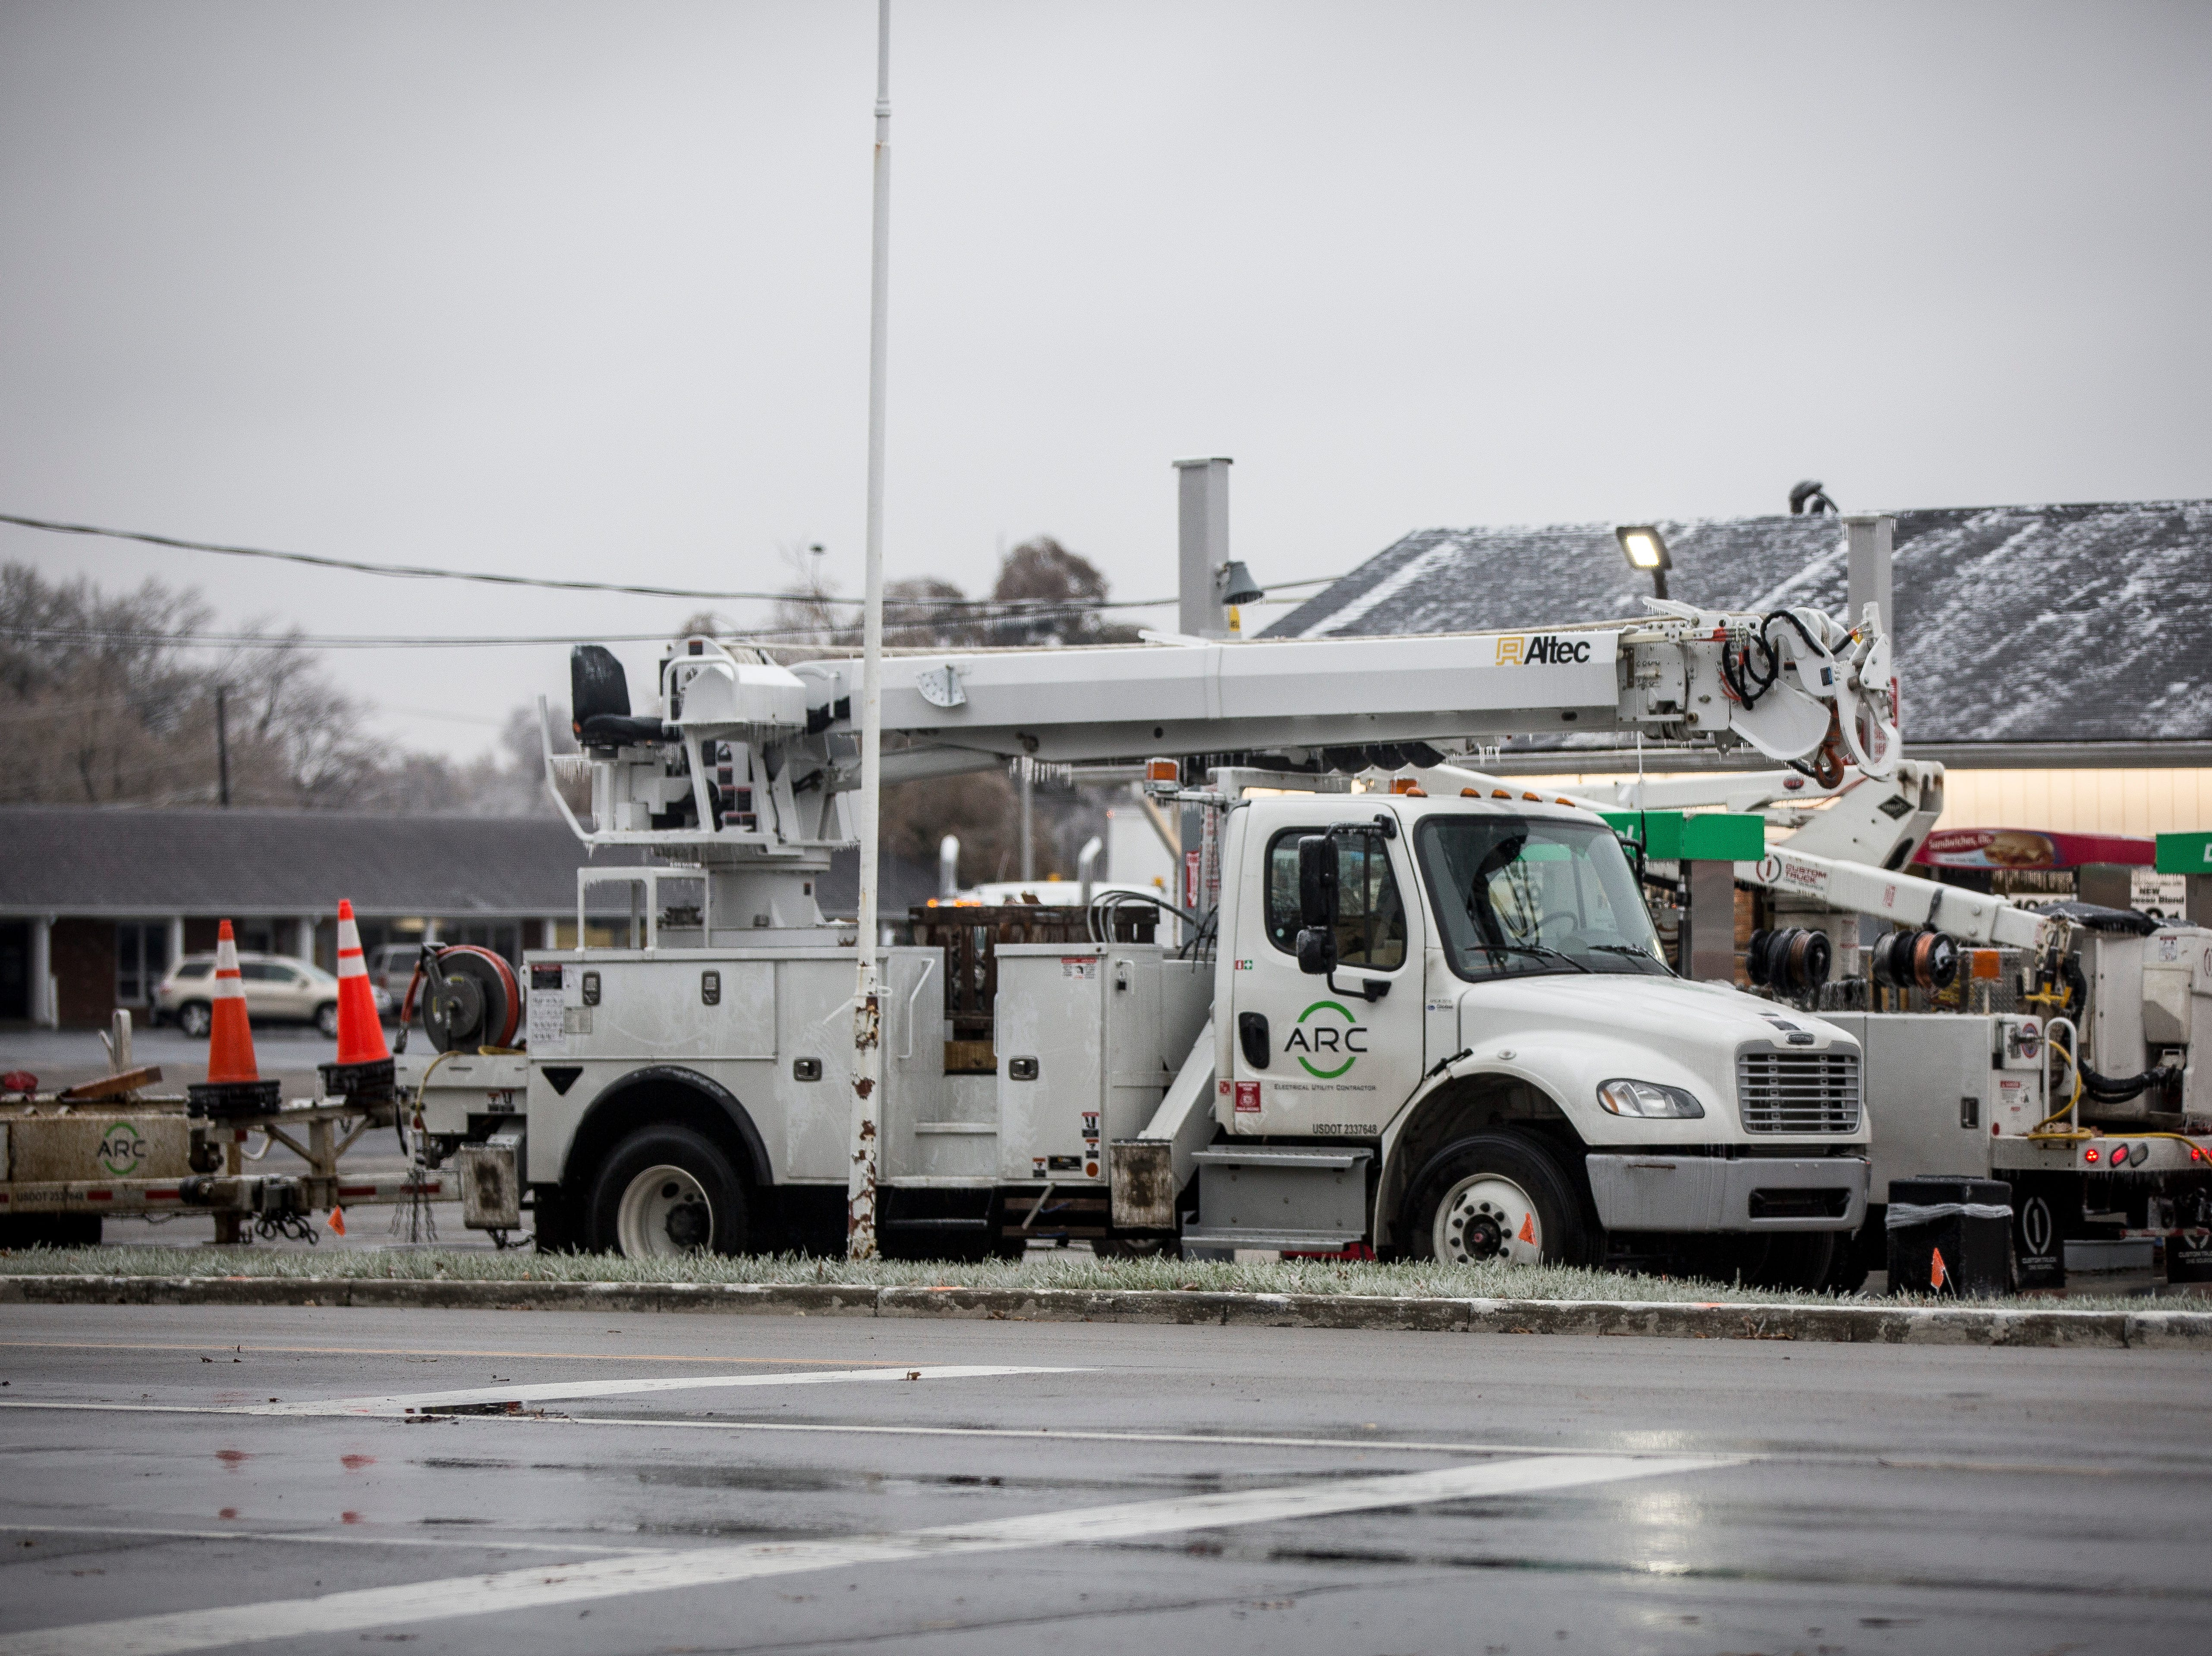 Ice from the overnight freezing rain caused limbs to crack and powerlines to sag, leaving over 5,000 people across Delaware County without power this morning. Traffic lights across the area were also down in addition to streets being closed in order to clear downed trees and limbs.